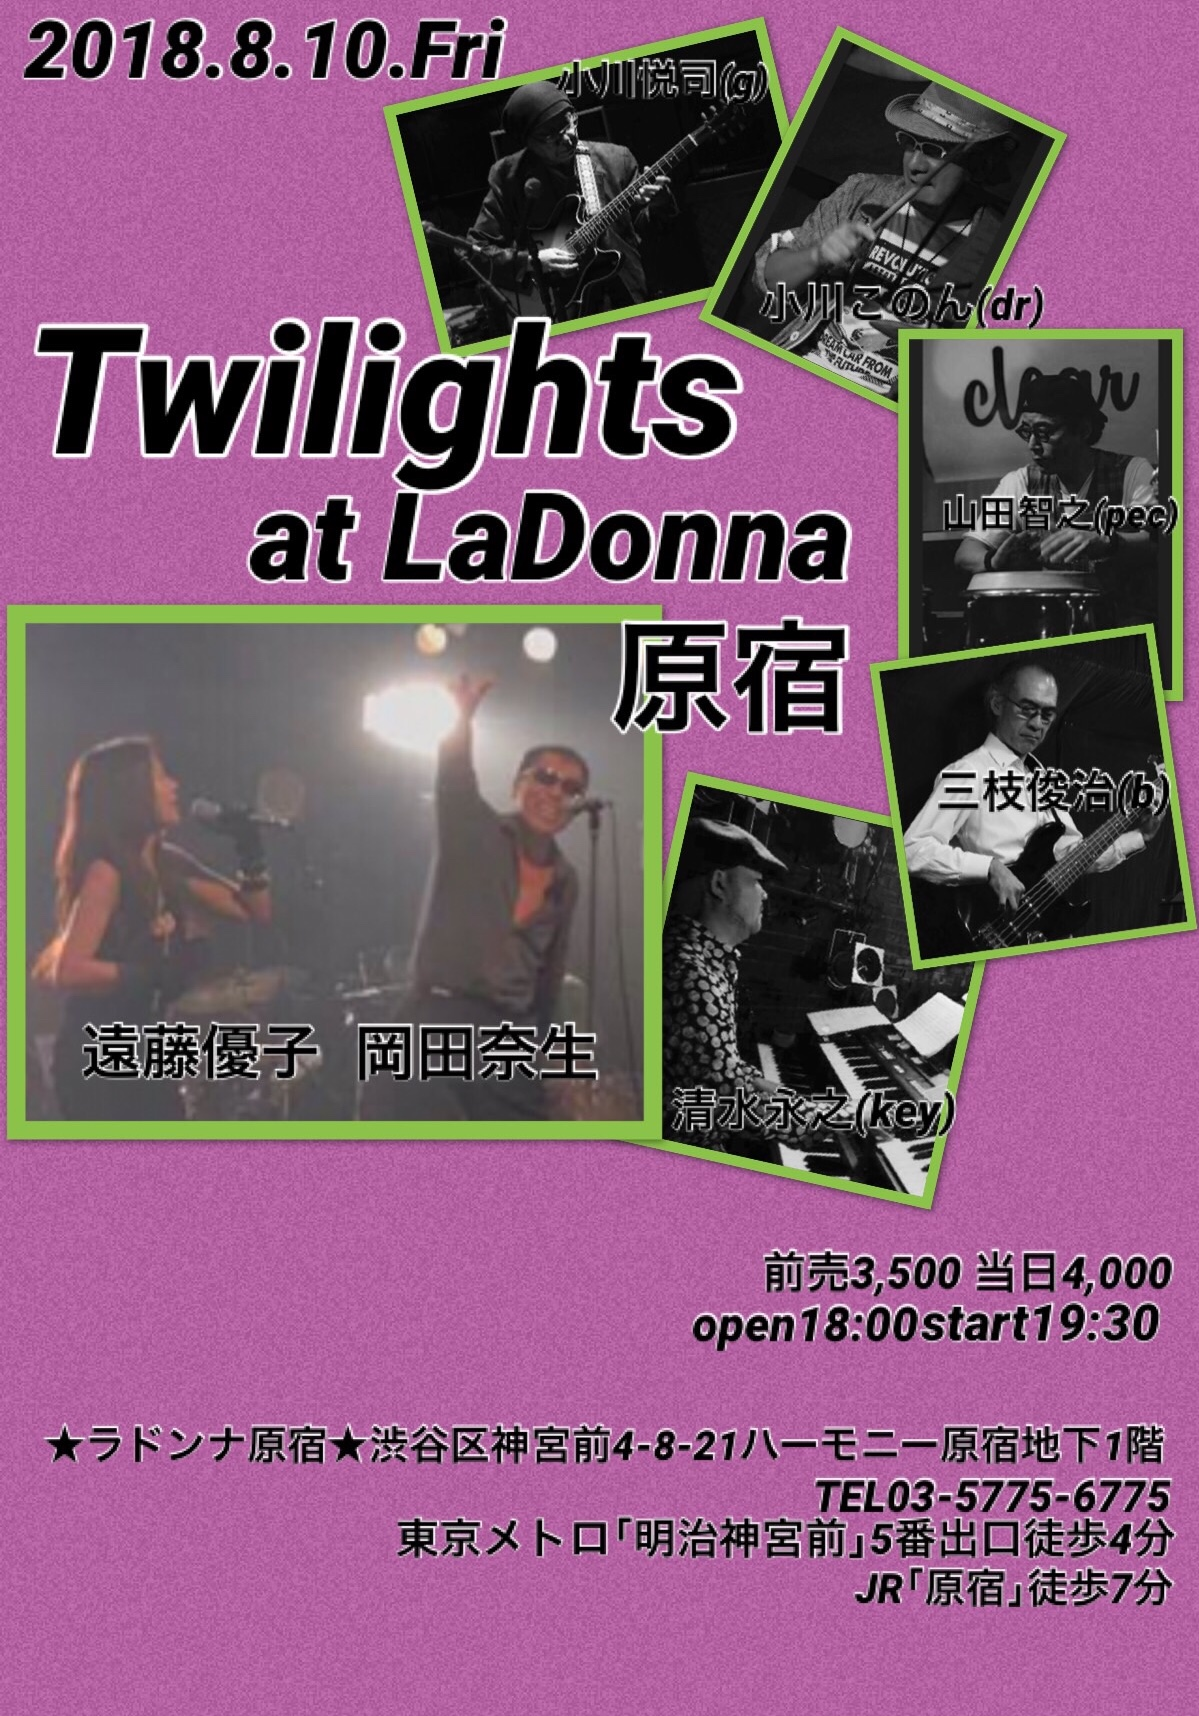 Twilights at LaDonna原宿